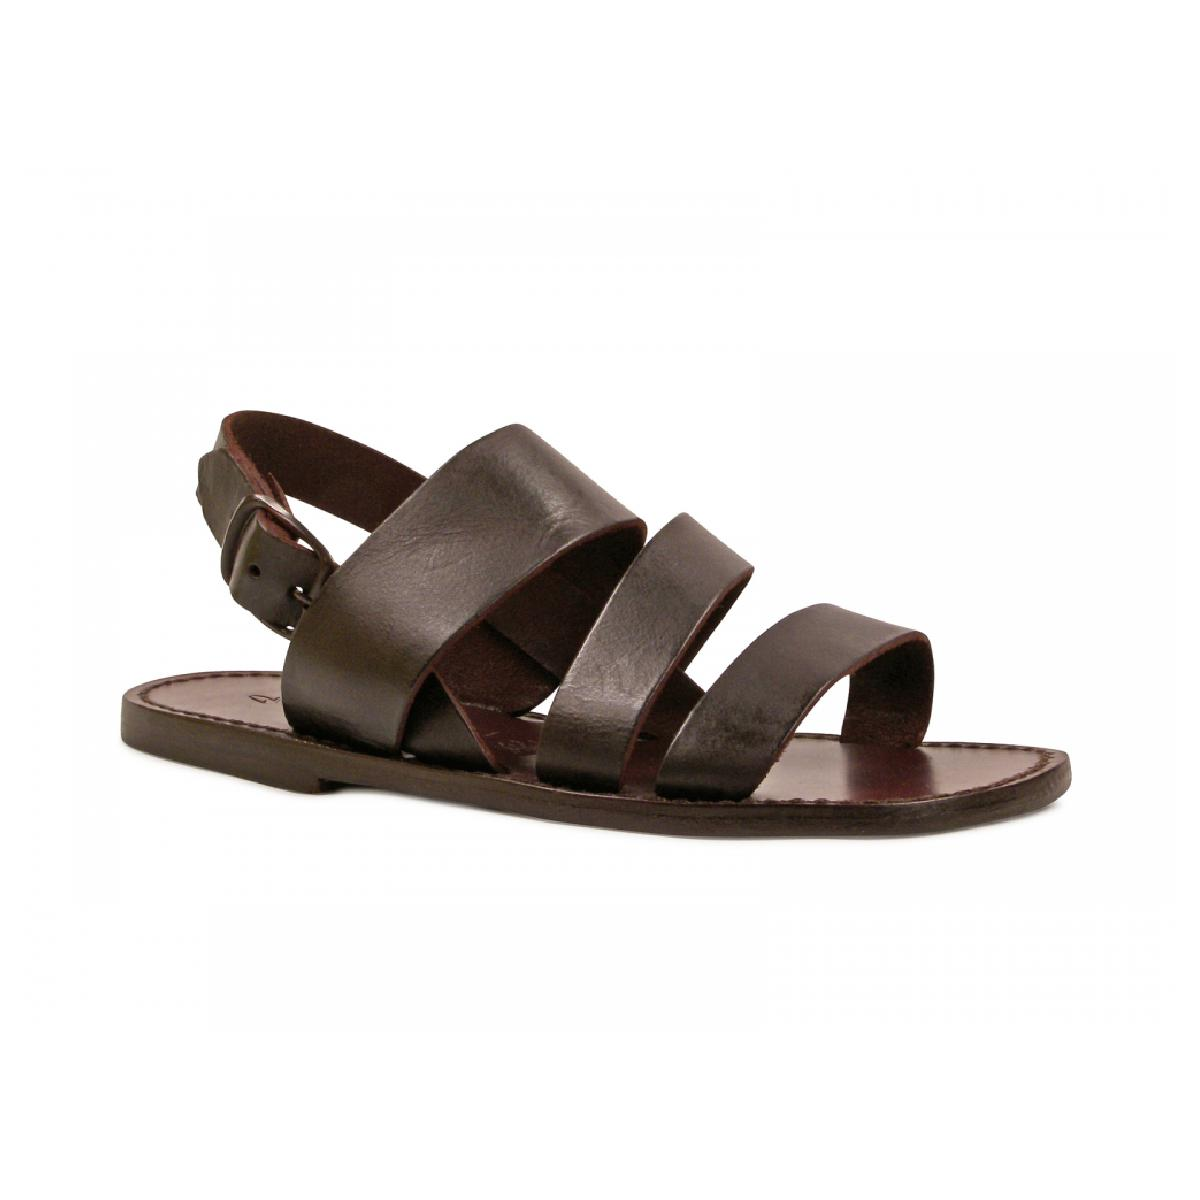 92936016acdc Brown leather sandals handmade in Italy for men s. Loading zoom